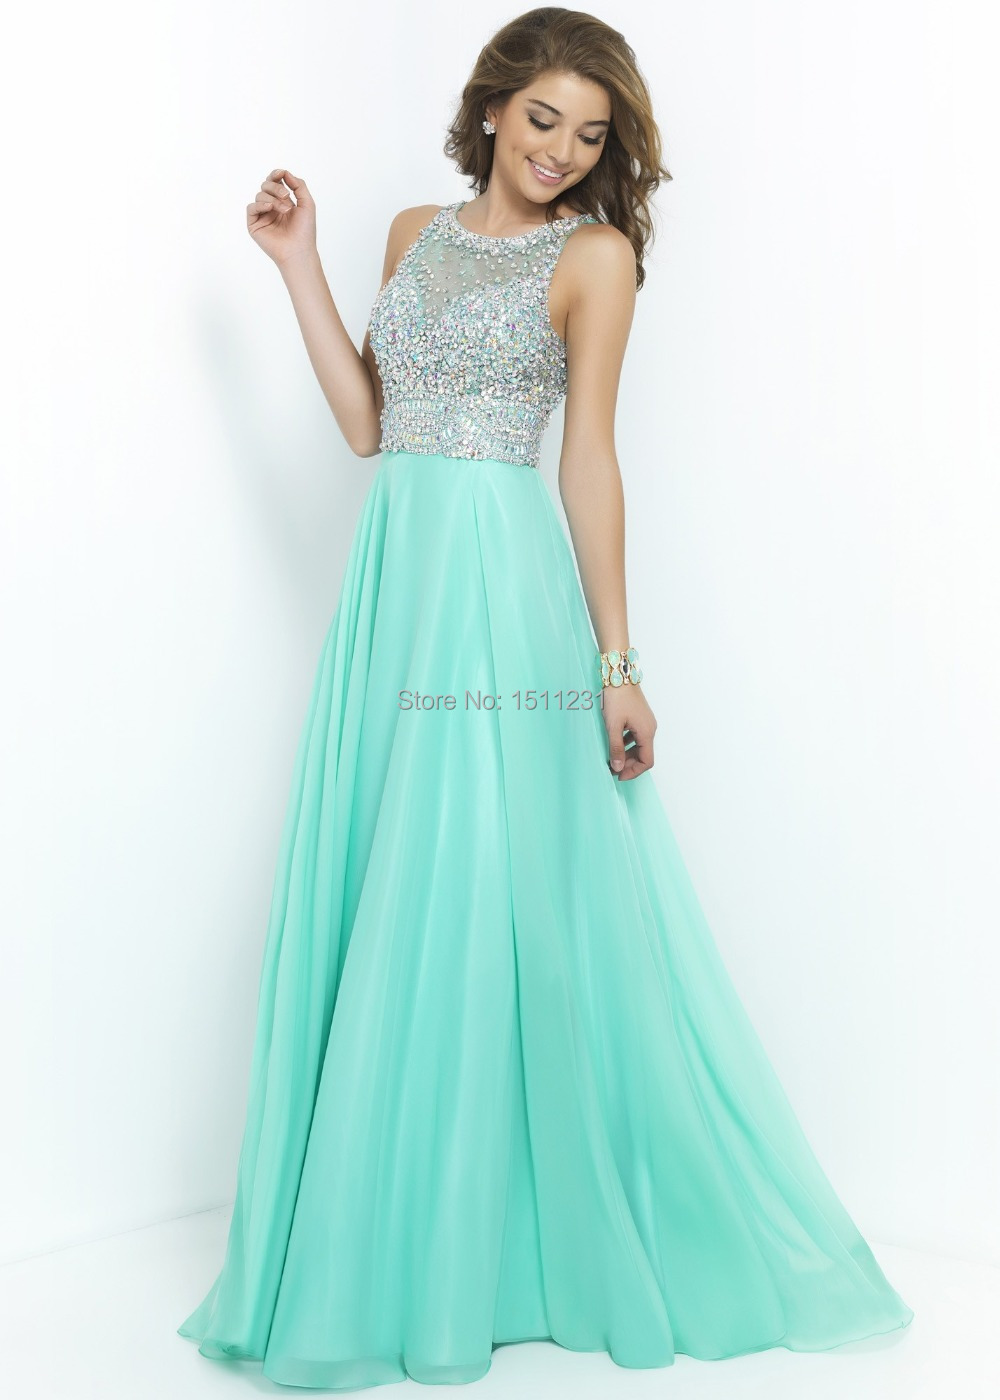 Fashionable Beaded Crystals Long Orange Mint Green White Prom ...